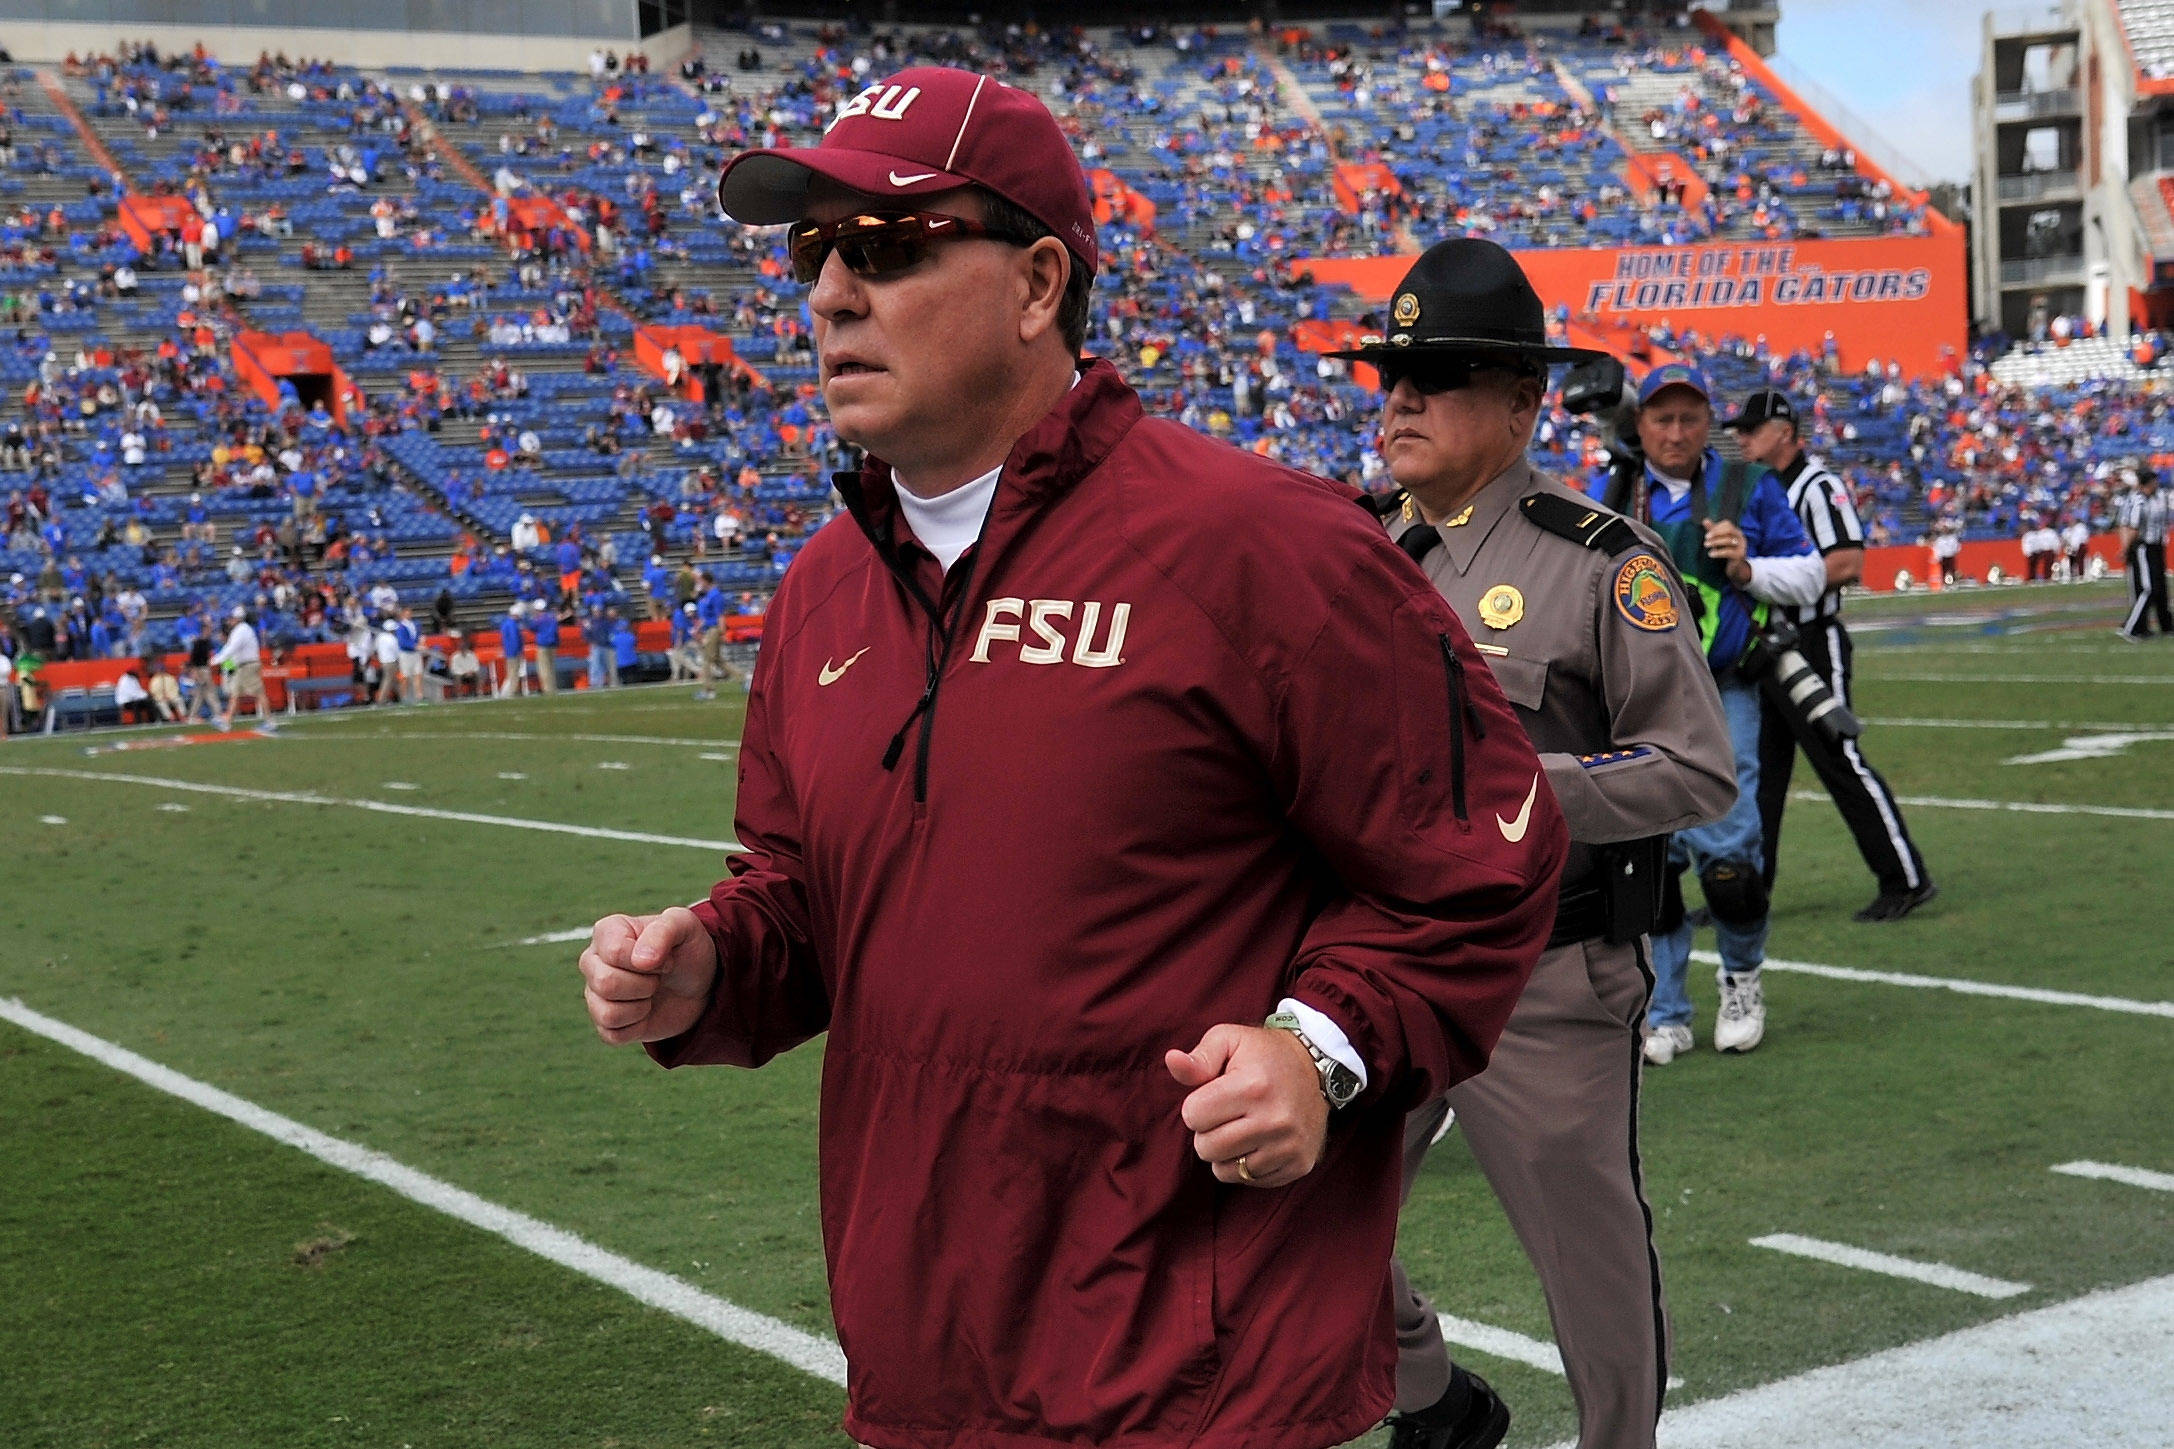 Jimbo Fisher runs off the field. Mandatory Credit: Steve Mitchell-USA TODAY Sports